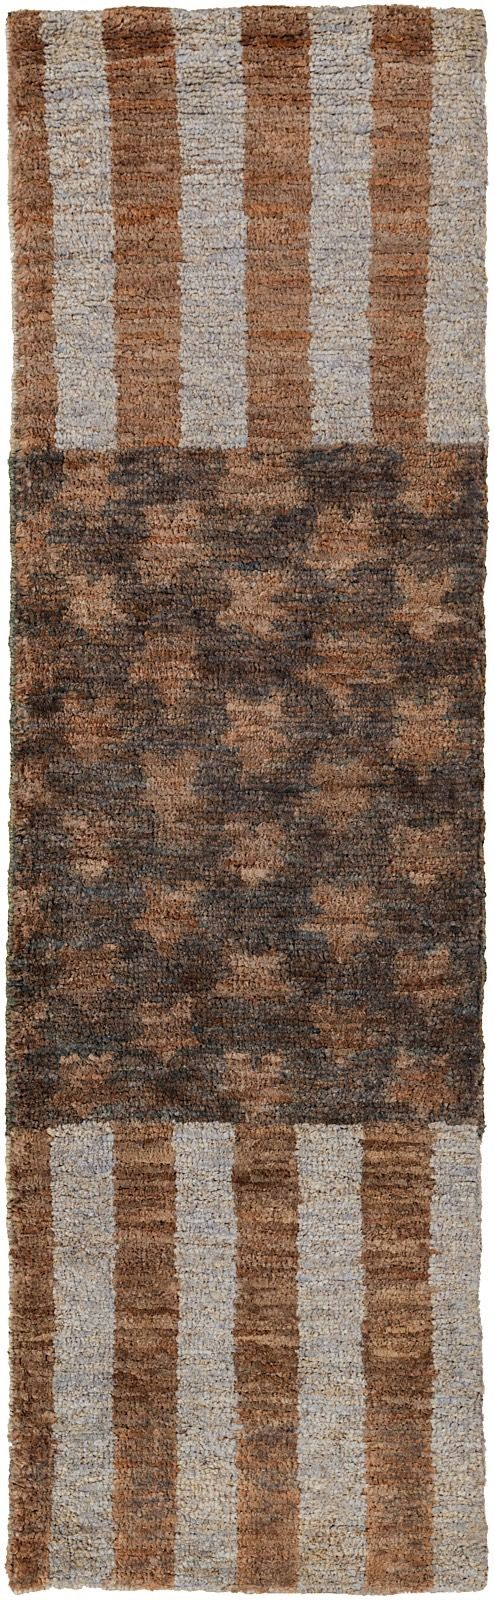 surya scarborough contemporary area rug collection